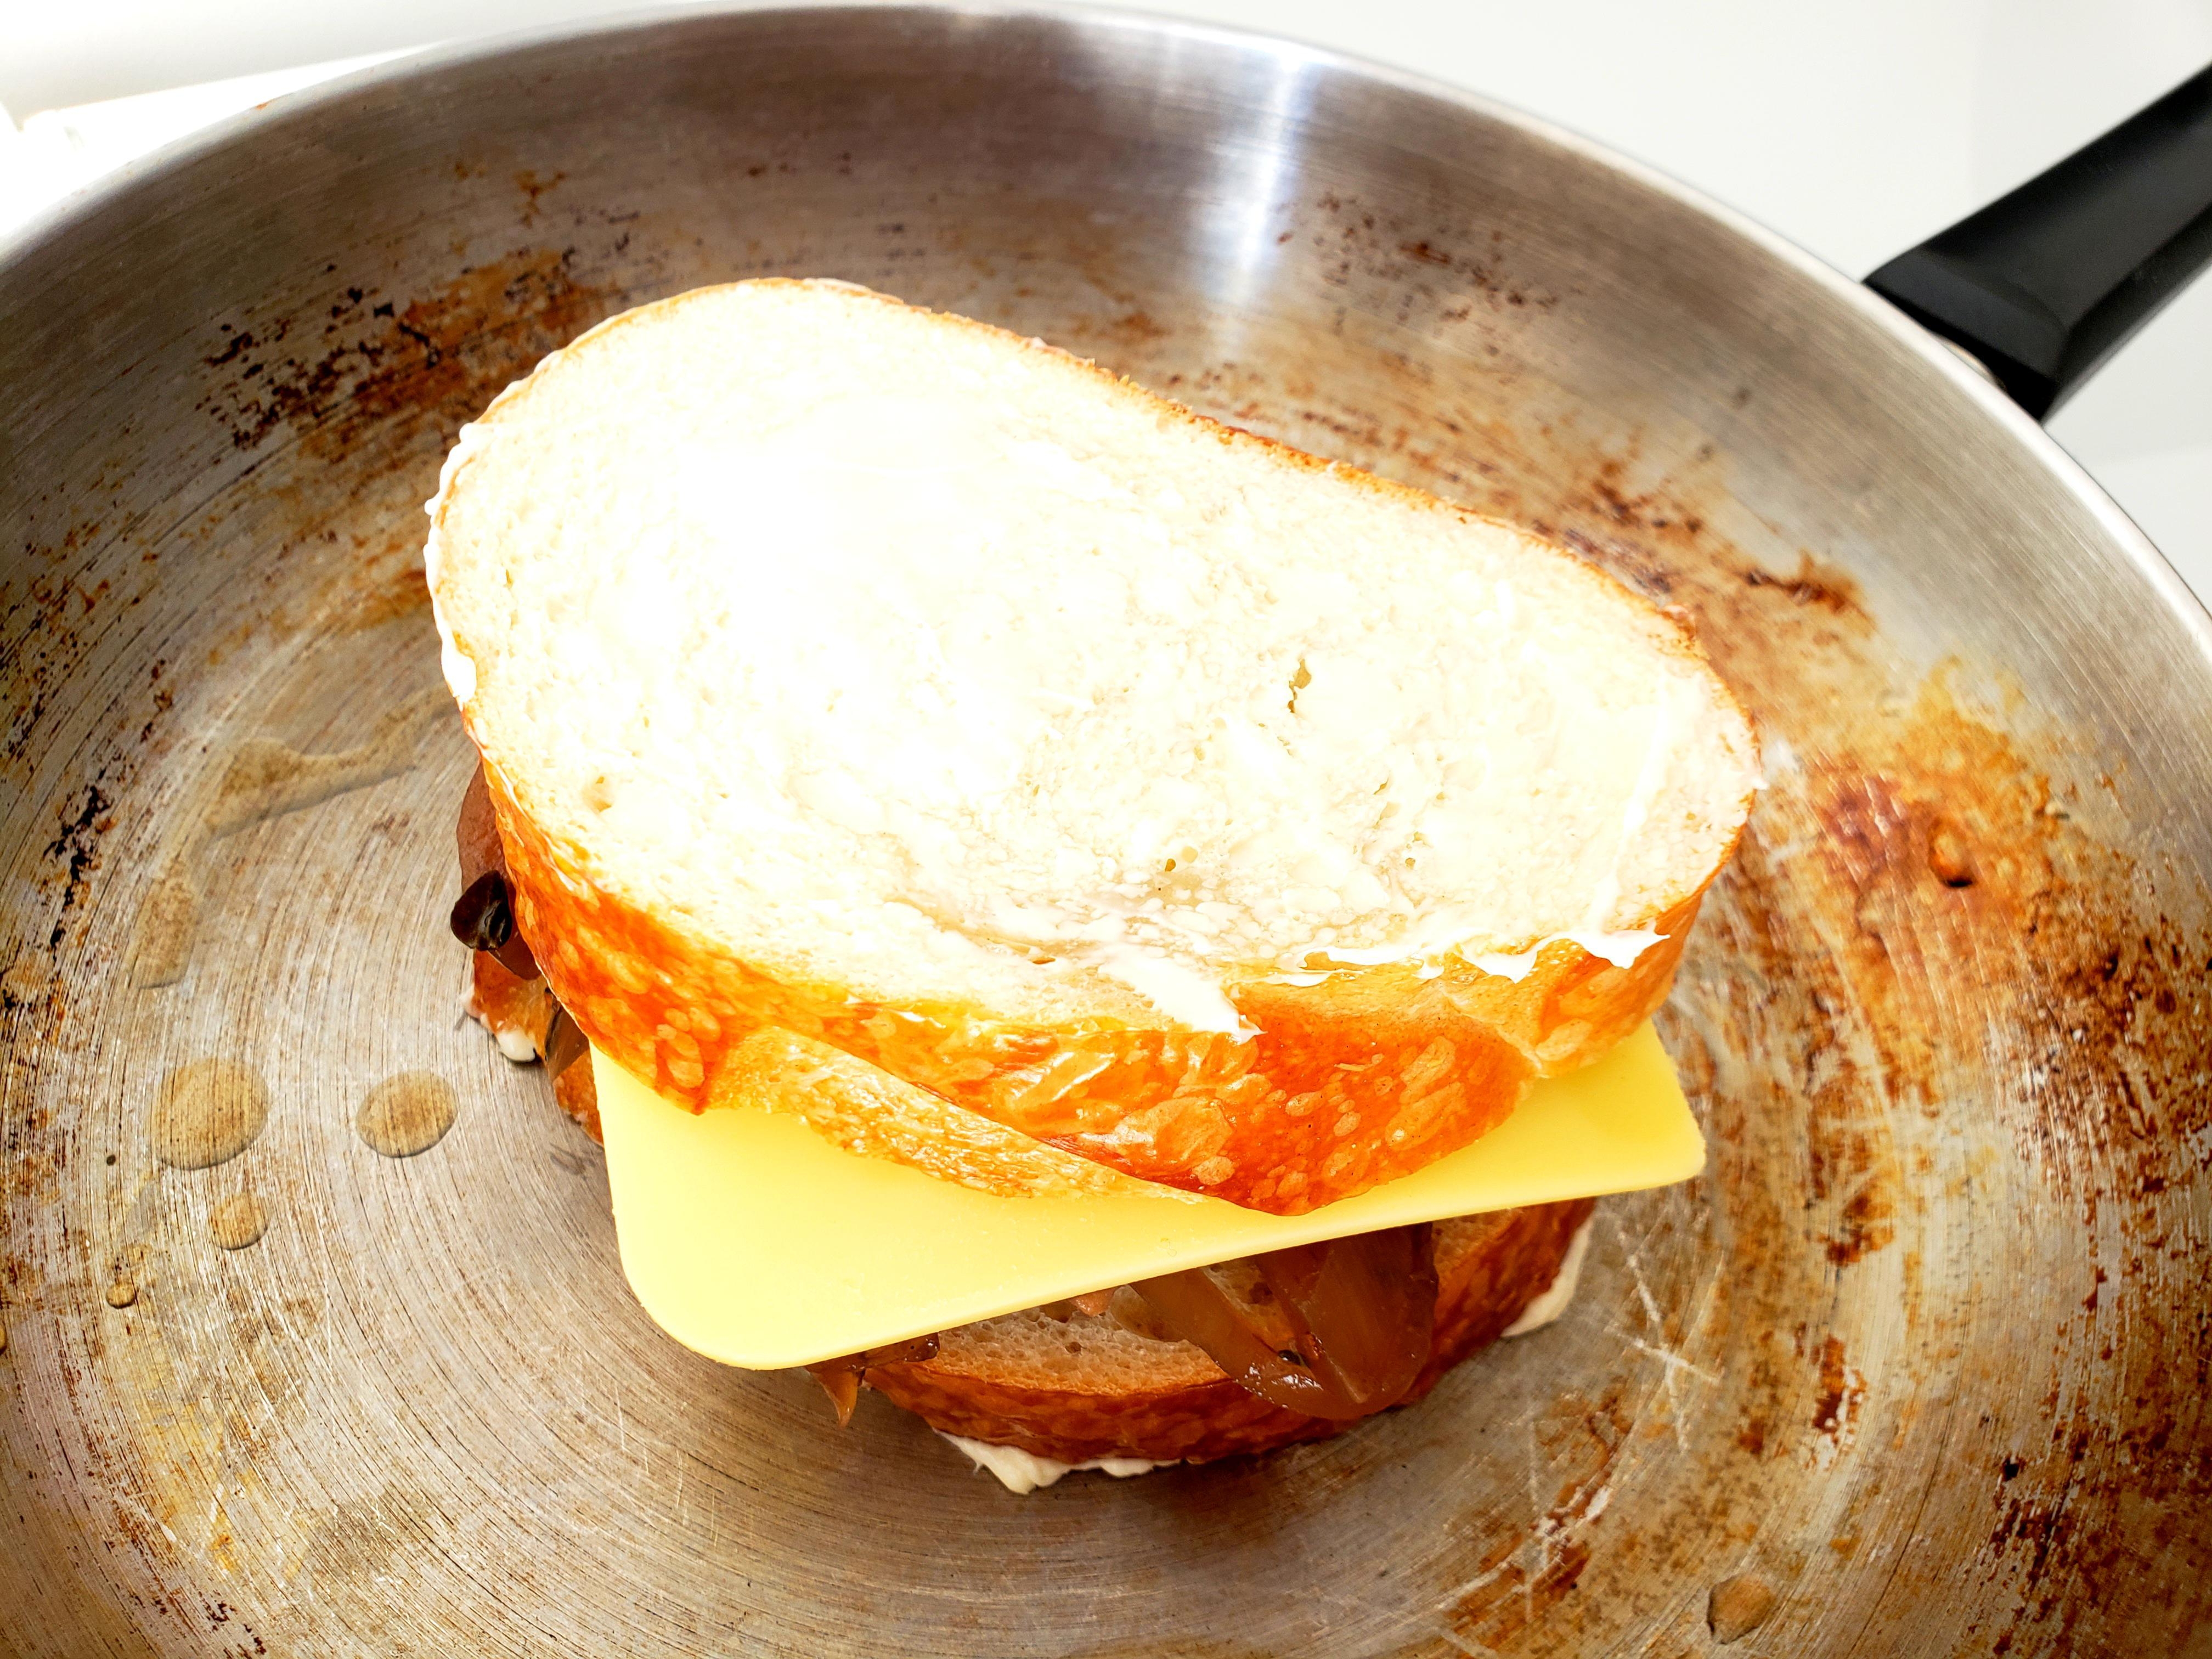 Cooking Grilled Cheese Sandwich with onions